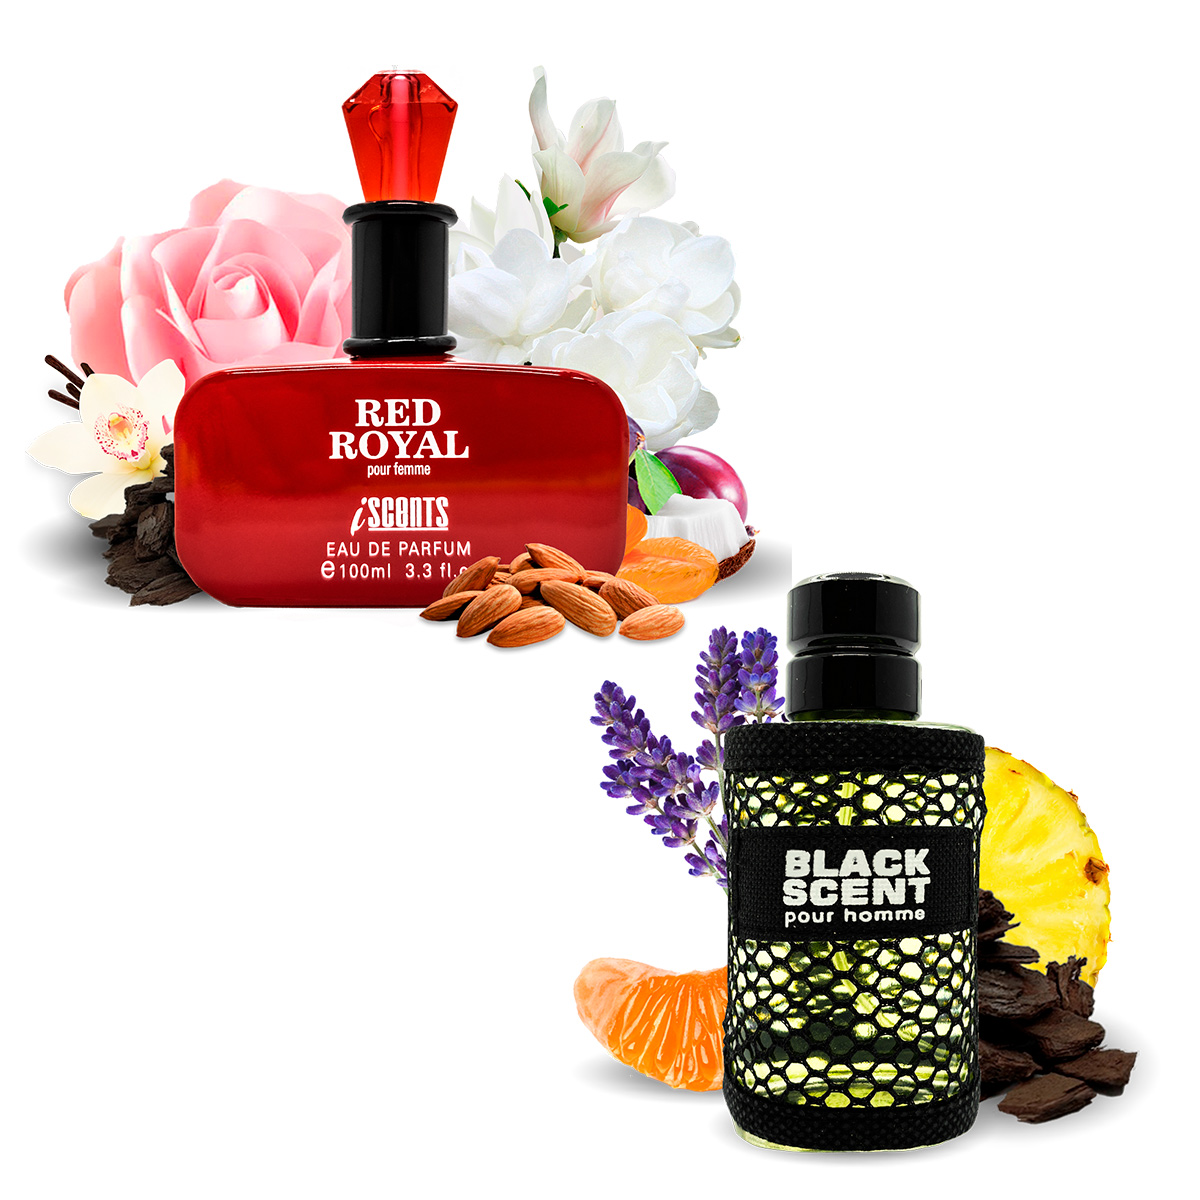 Kit 2 Perfumes Importados Red Royal e Black Scent I Scents